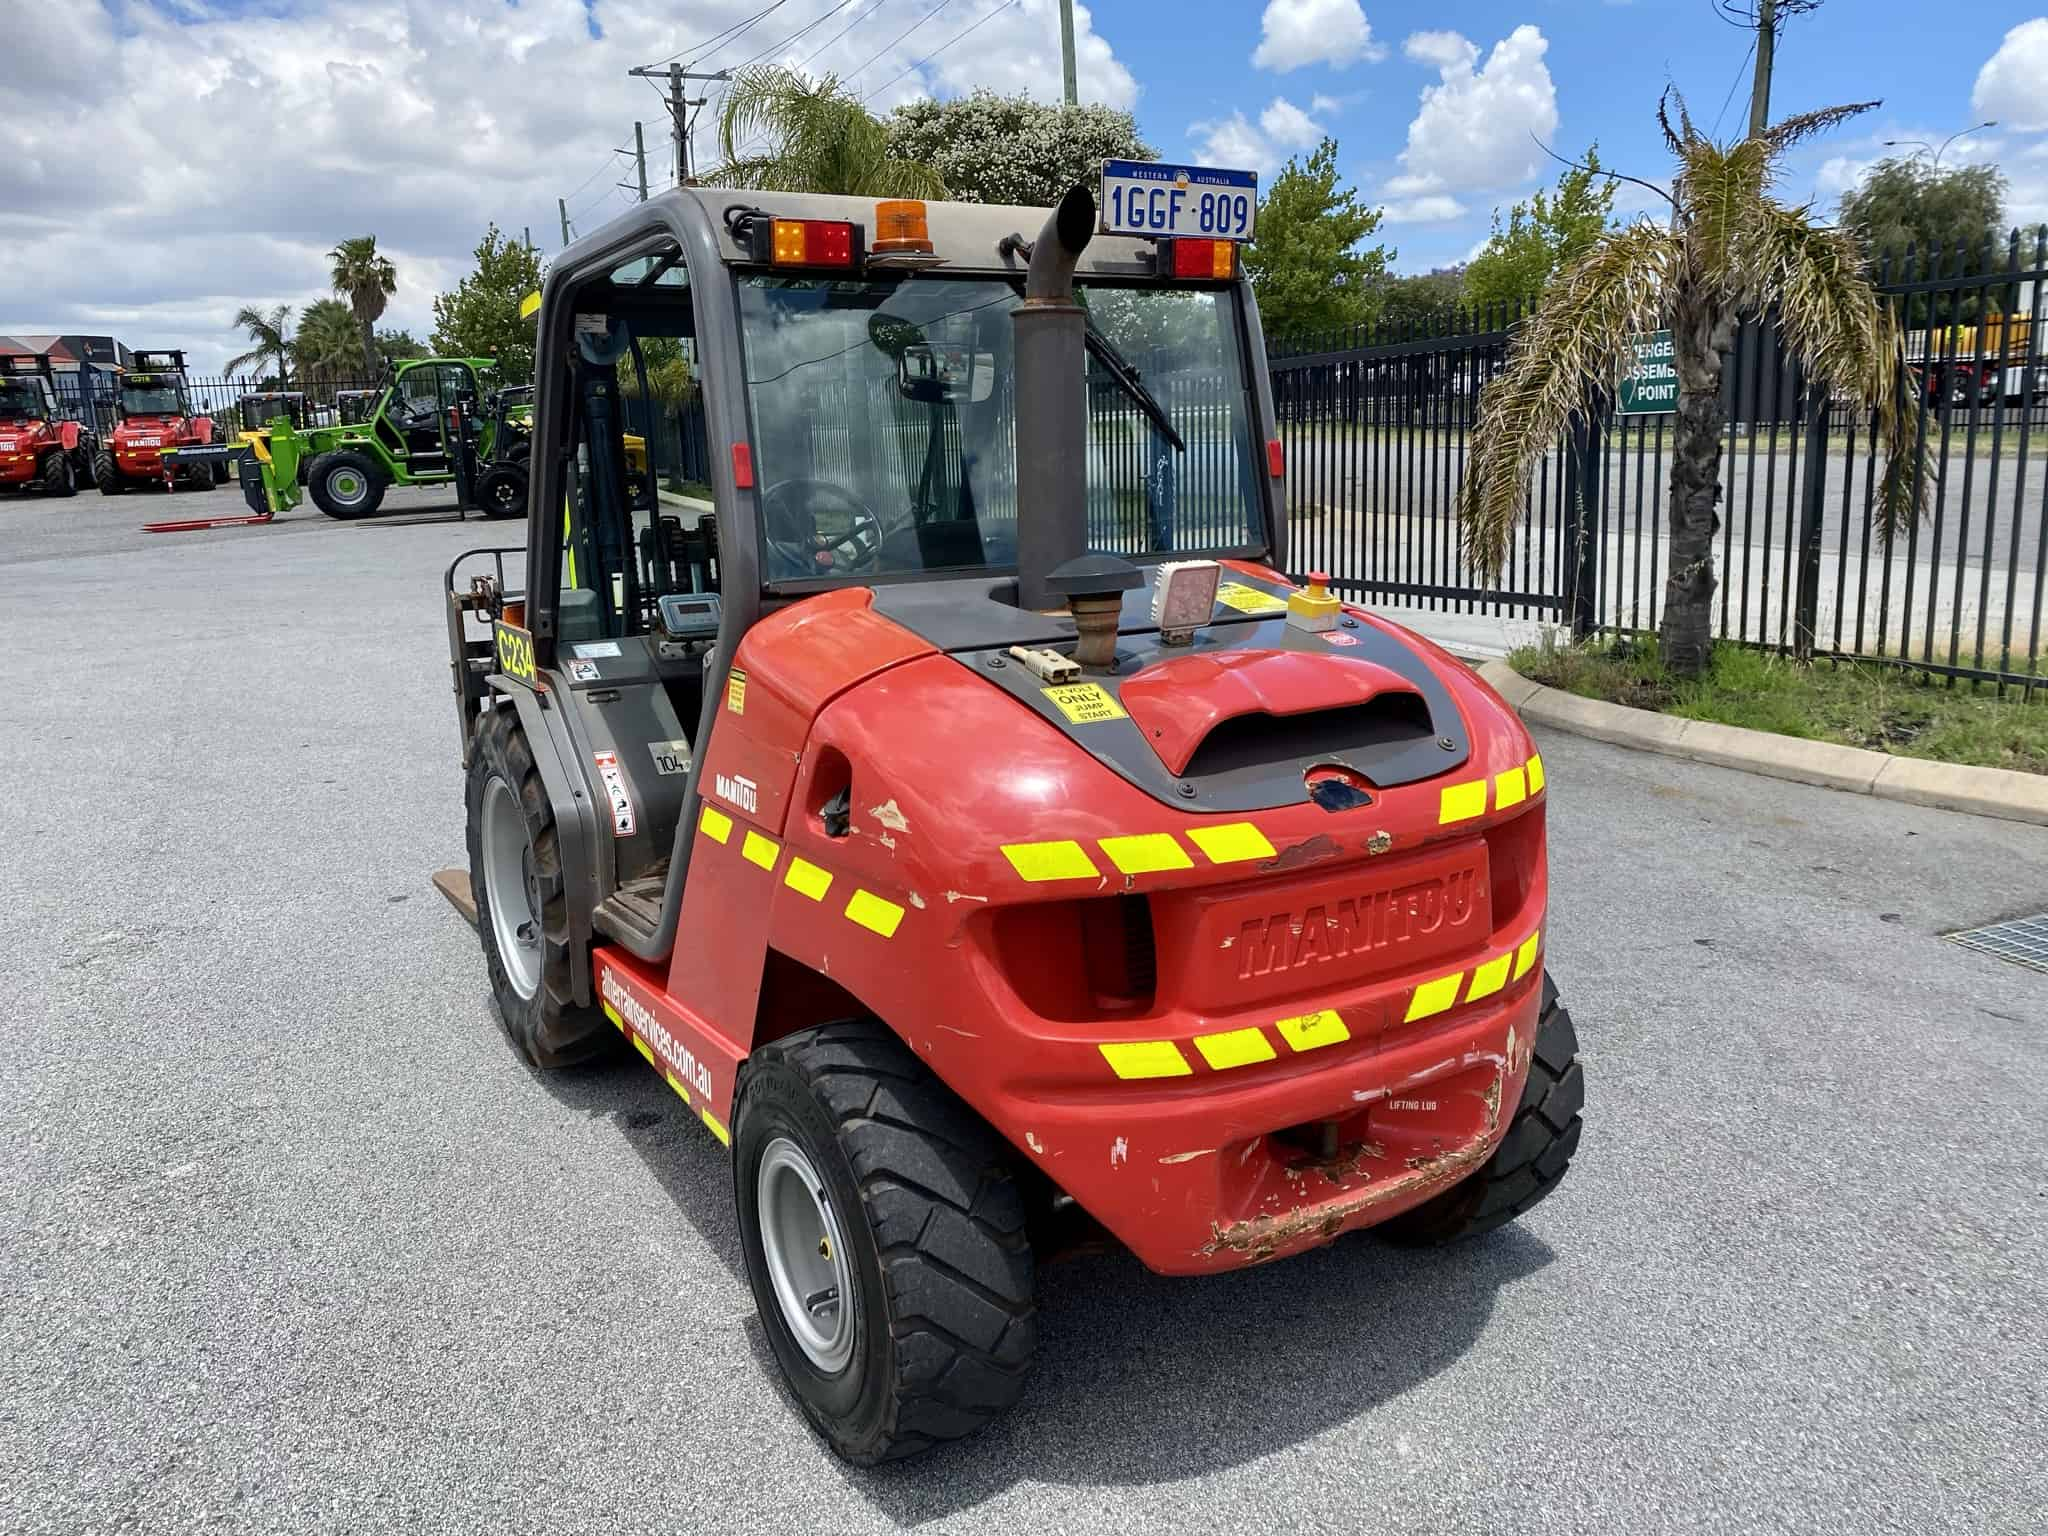 Manitou MH 25-4T Buggie rough terrain forklift for sale in Perth